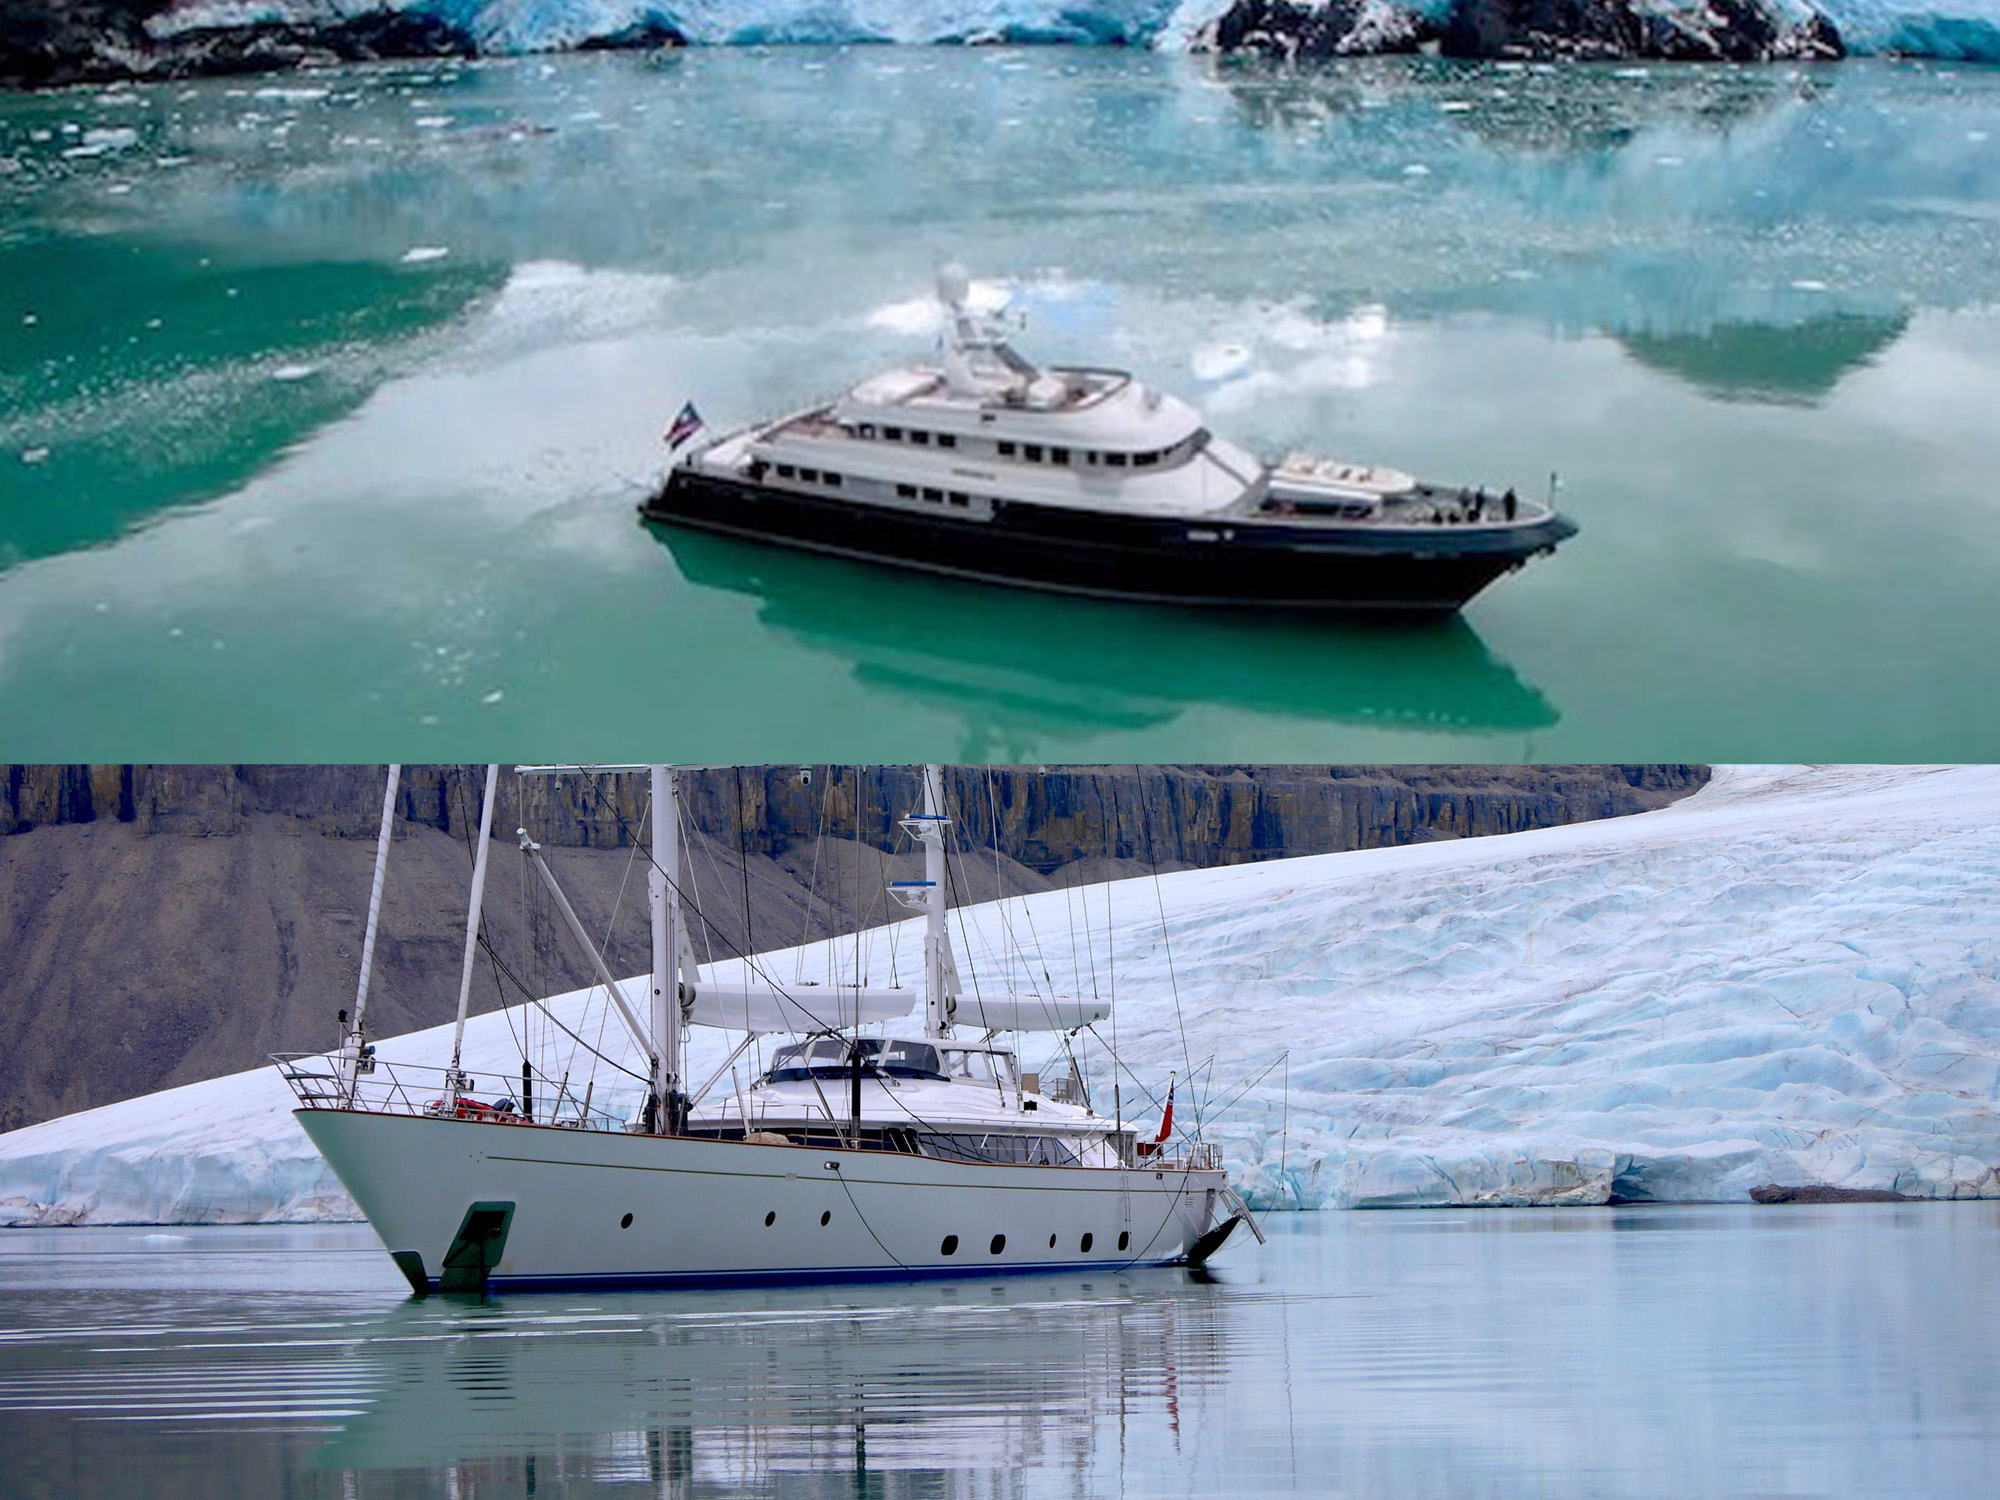 Boat International Voyager's Award winning yachts 2019 and 2020 by Ron Holland Design in arctic waters with ice